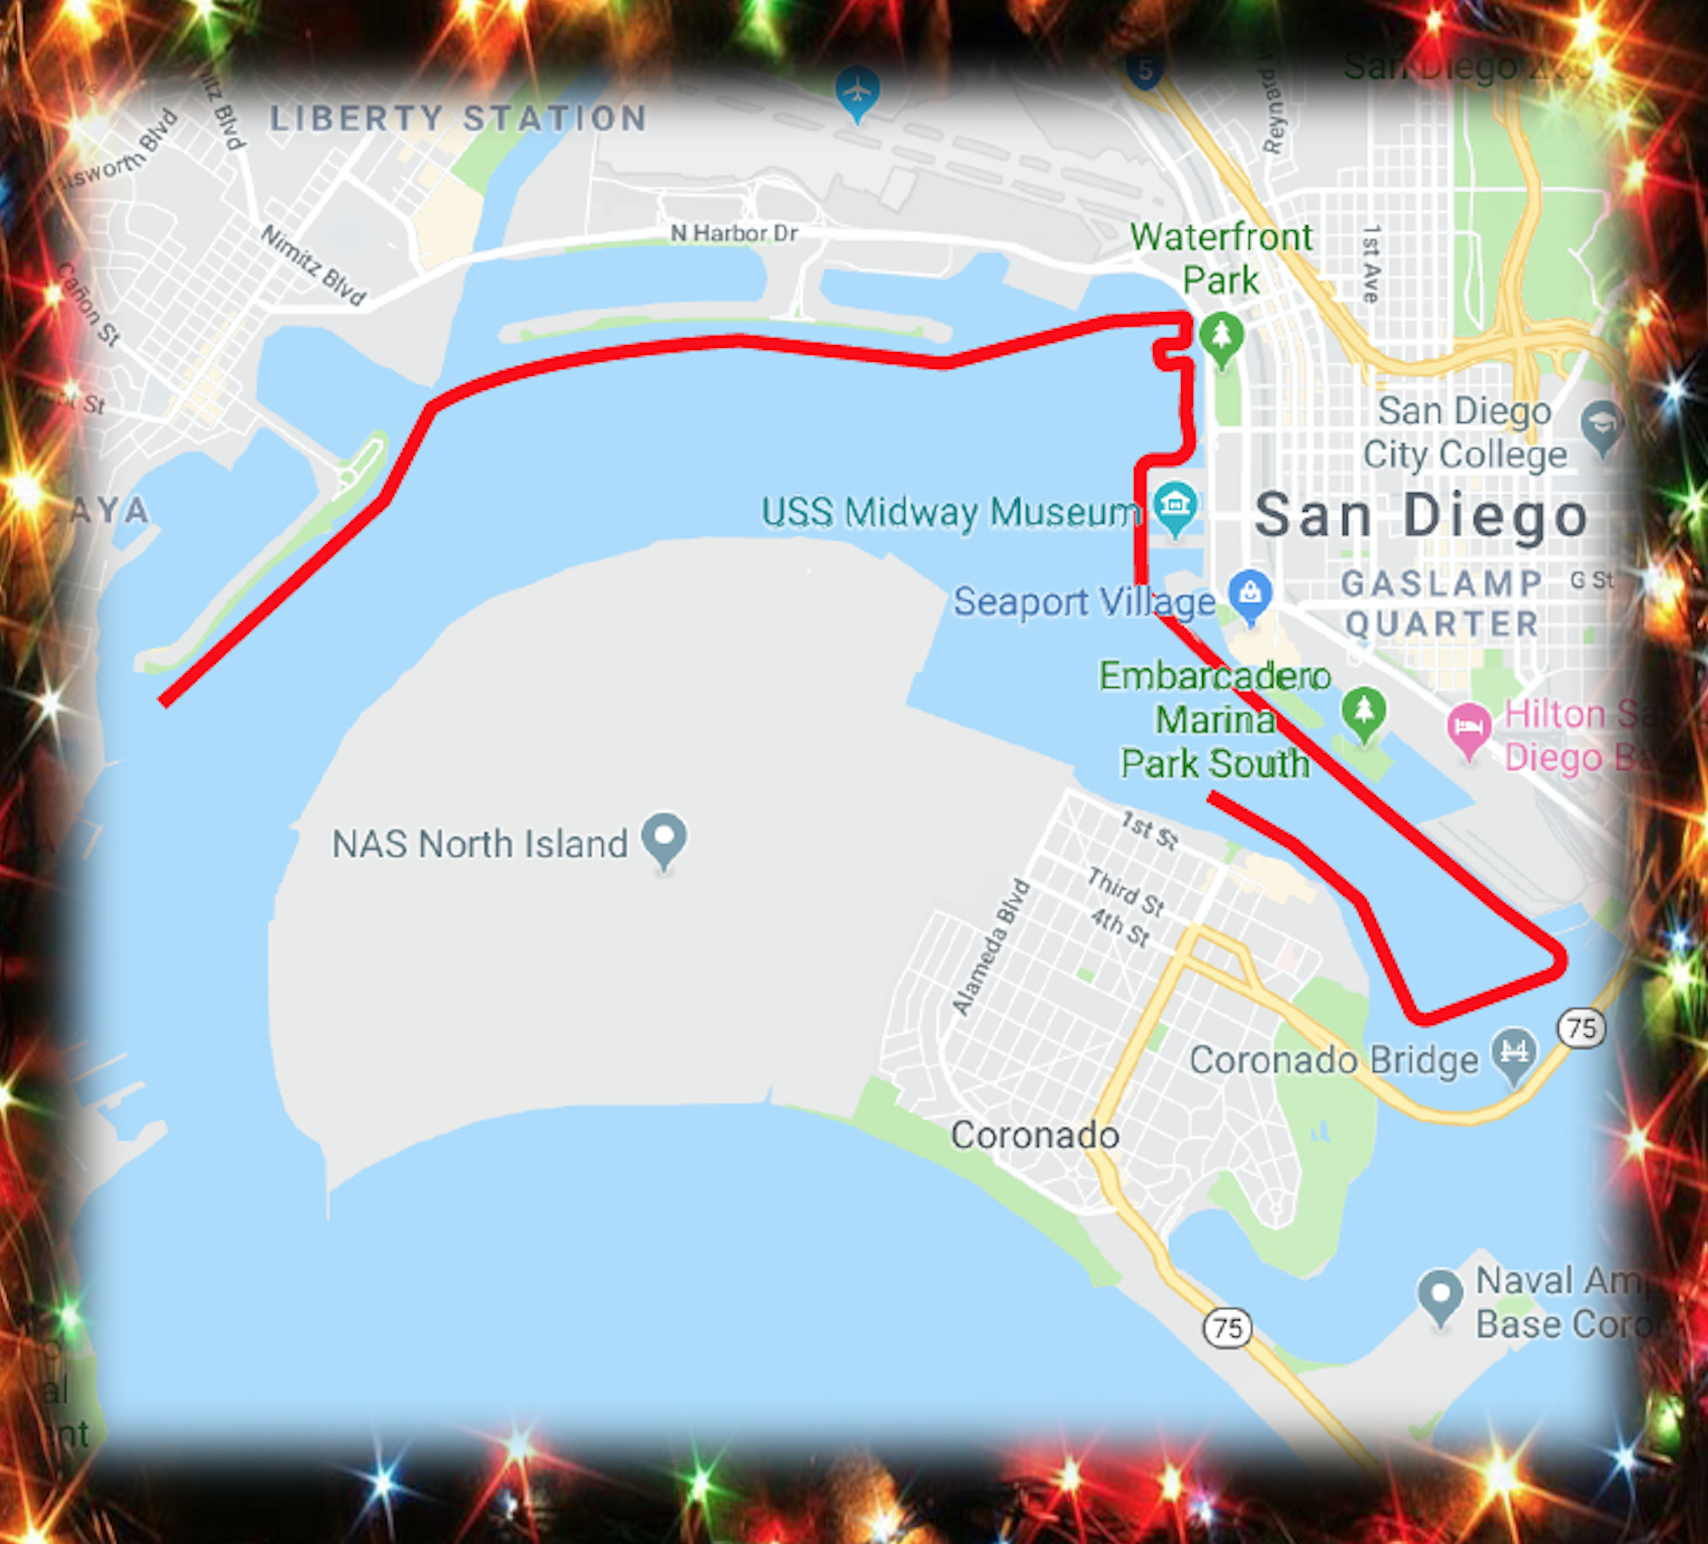 Parade of Lights 2018 route